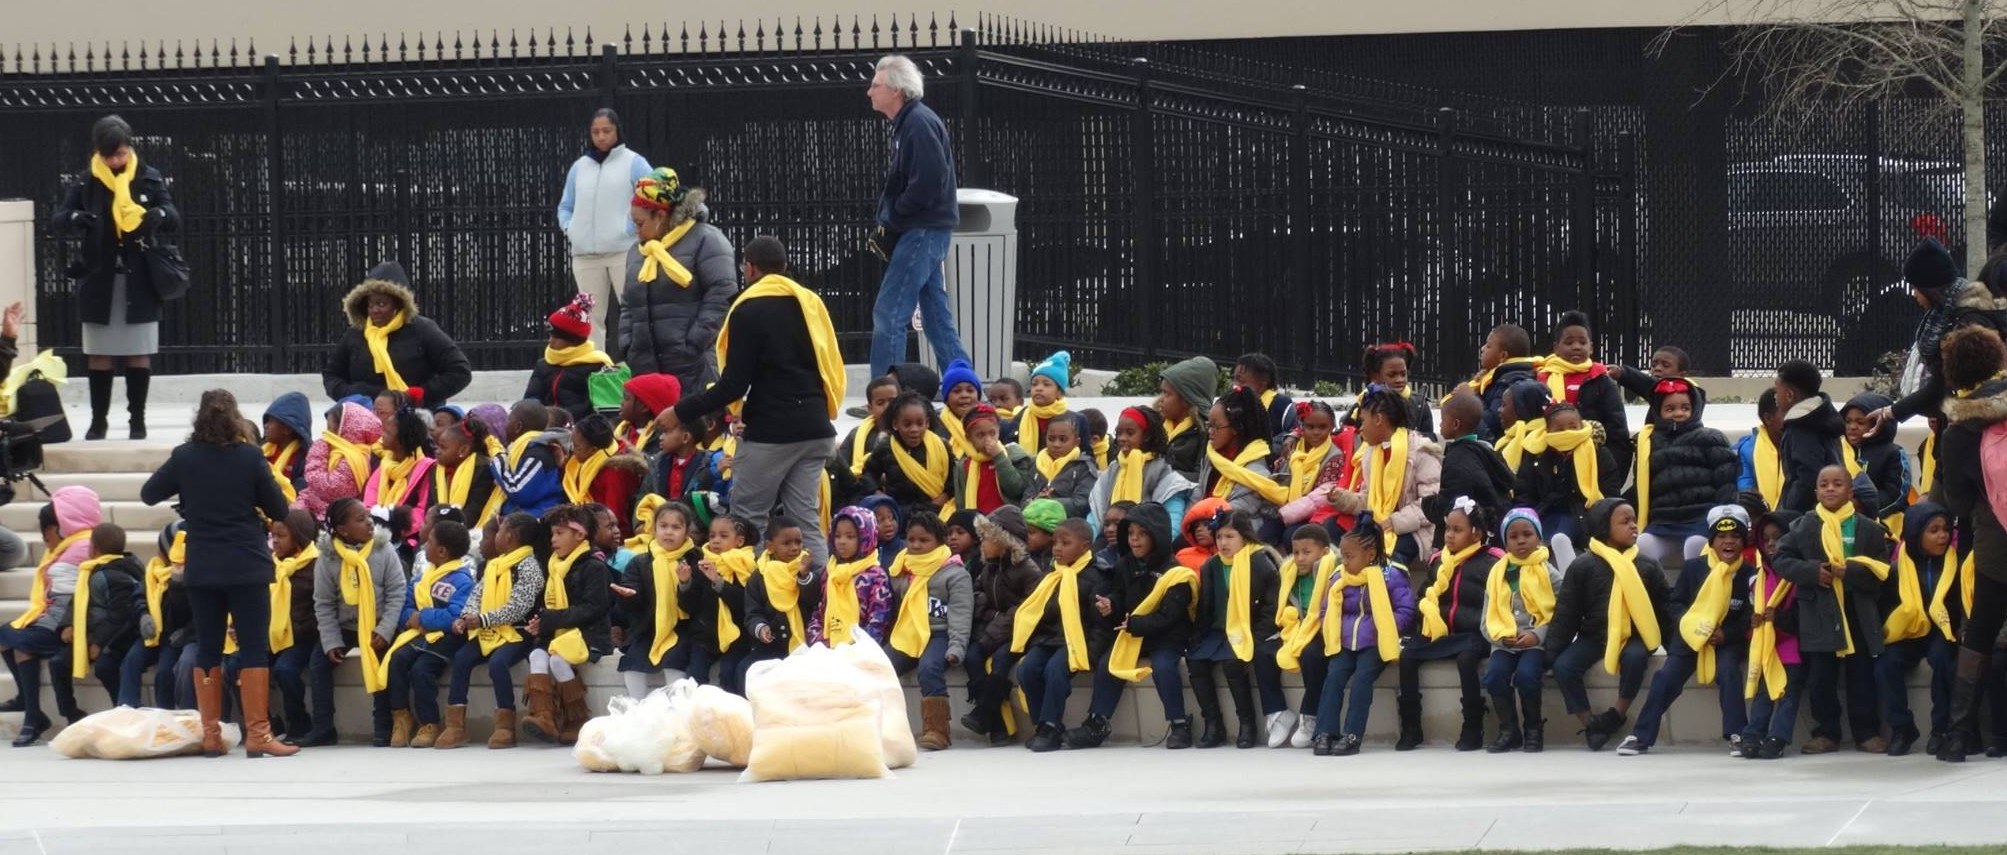 Hundreds of schoolchildren braved chilly temperatures Wednesday to attend the National School Choice Week rally at the Georgia State Capitol in Atlanta